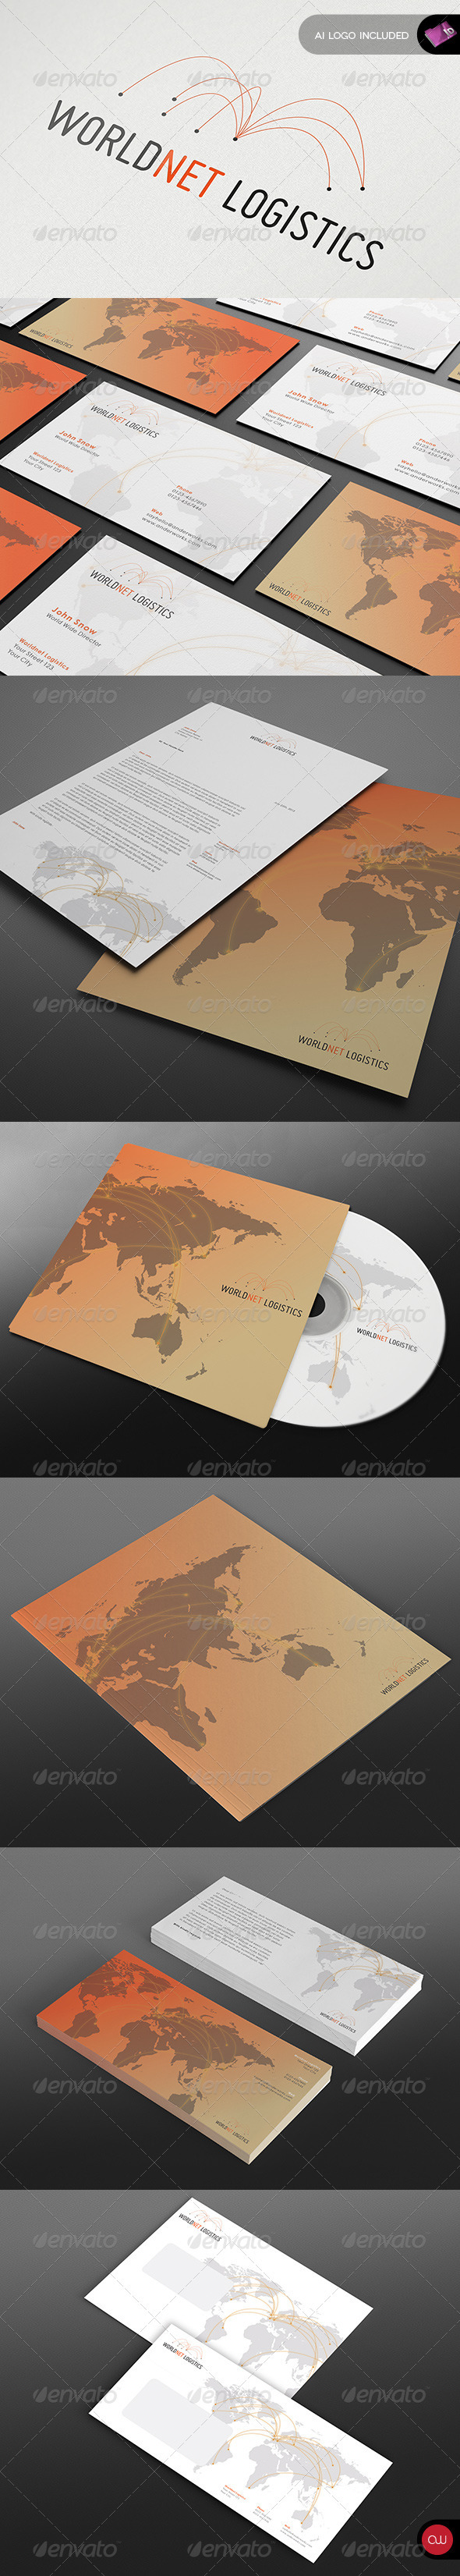 Stationary & Identity - World Net Logistics - Stationery Print Templates